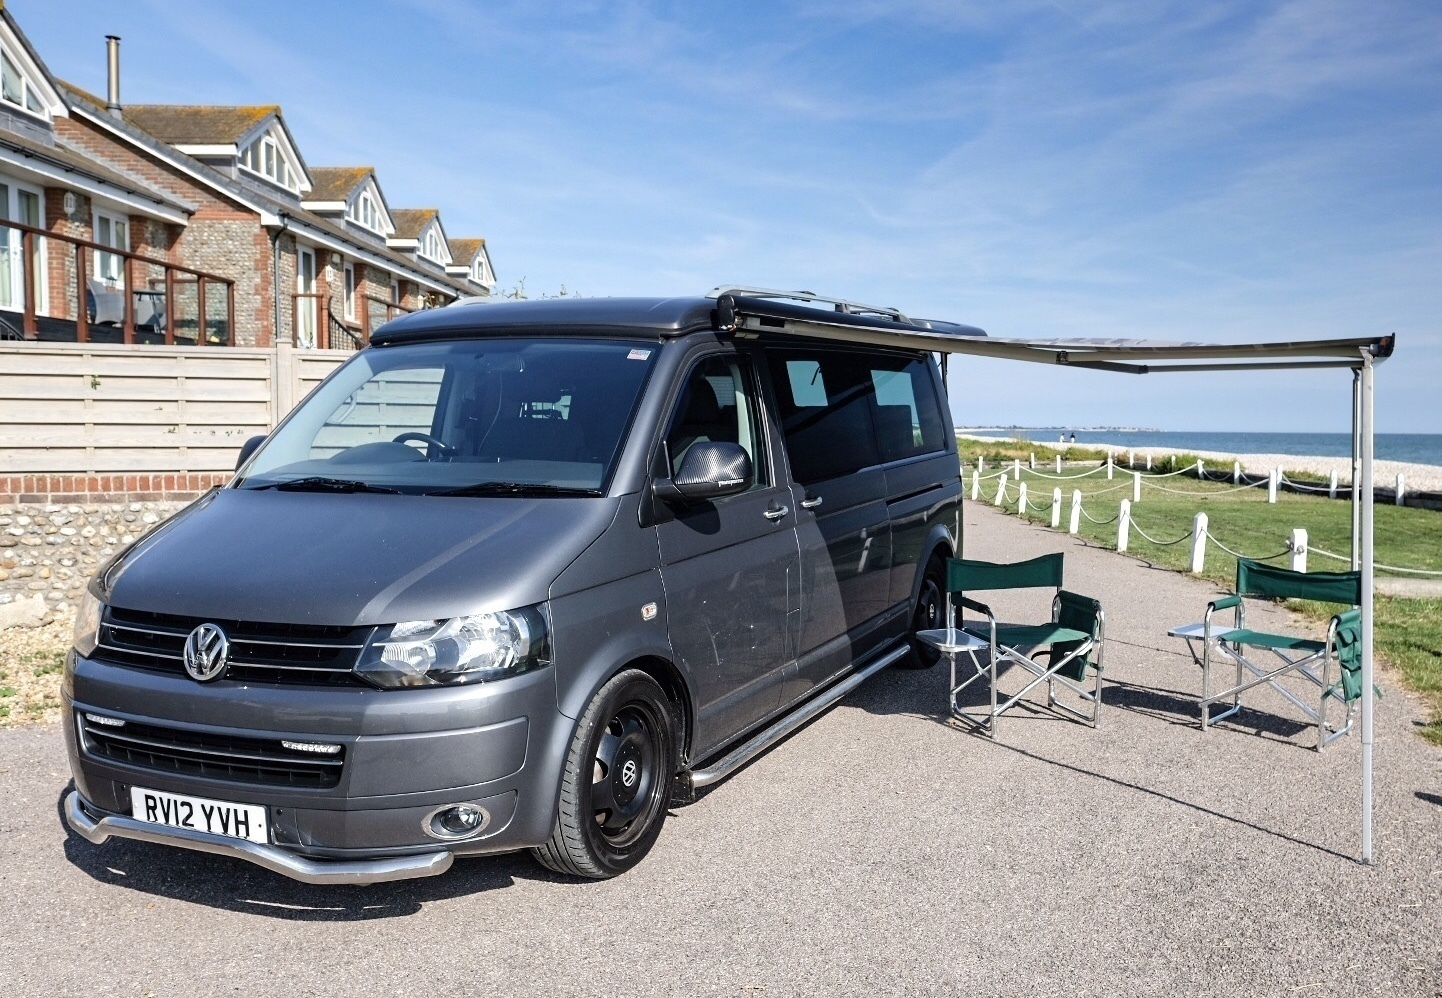 Campervan For Hire In Emsworth From 95 00 Vw T5 Auto 4 Berth Pop Top Lwb And 4motion 4wd Camplify